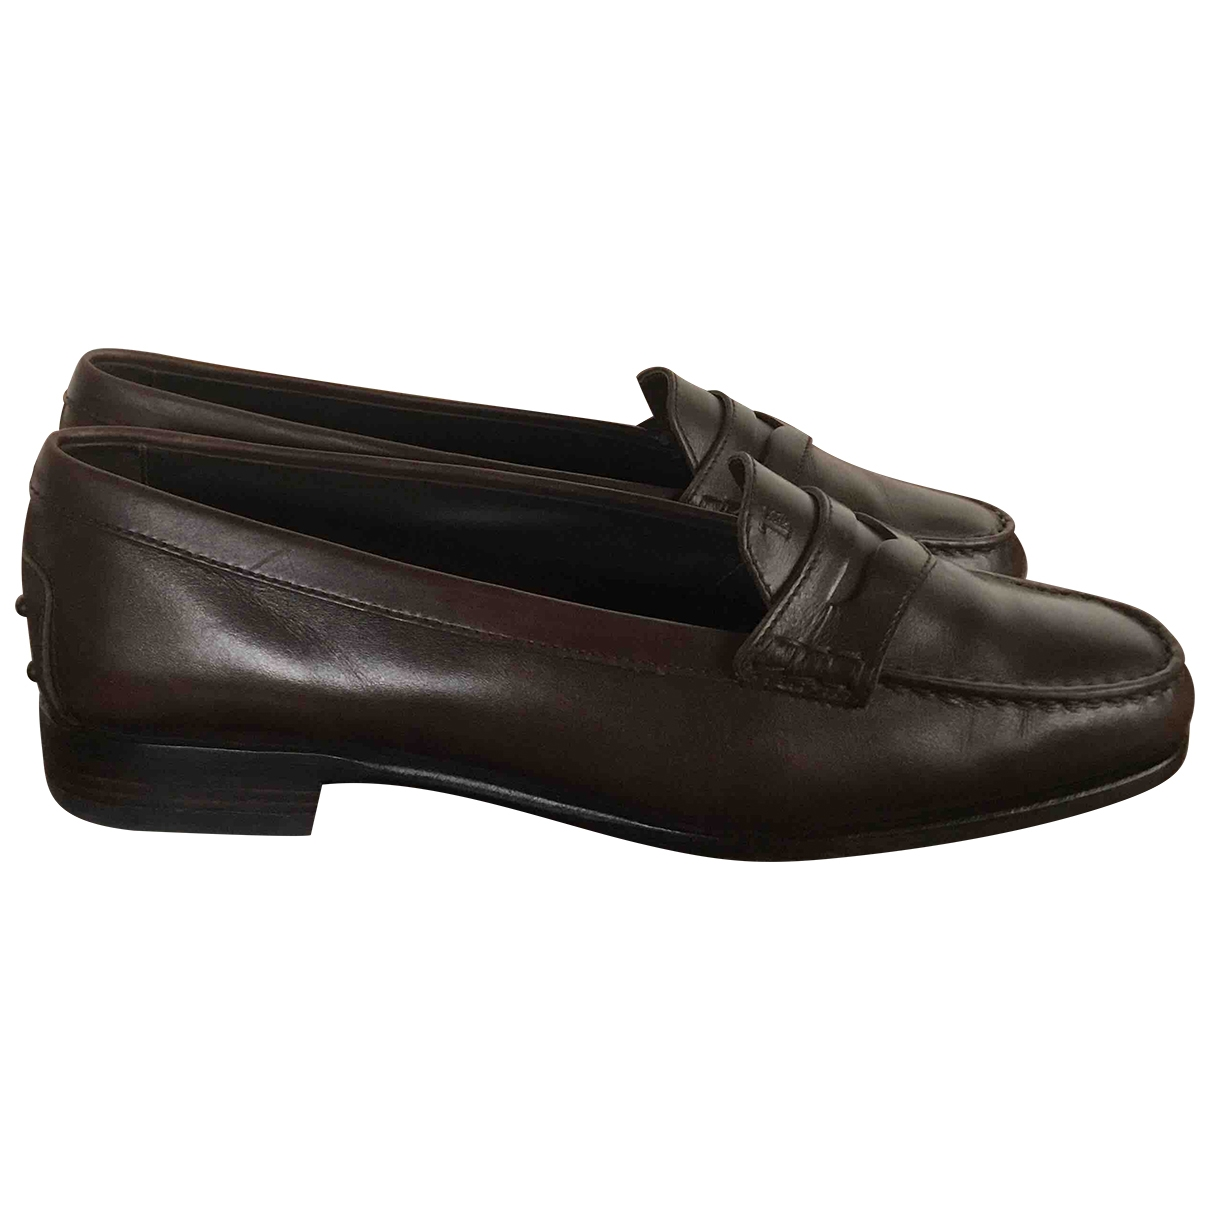 Tod's Gommino Brown Leather Flats for Women 38.5 EU